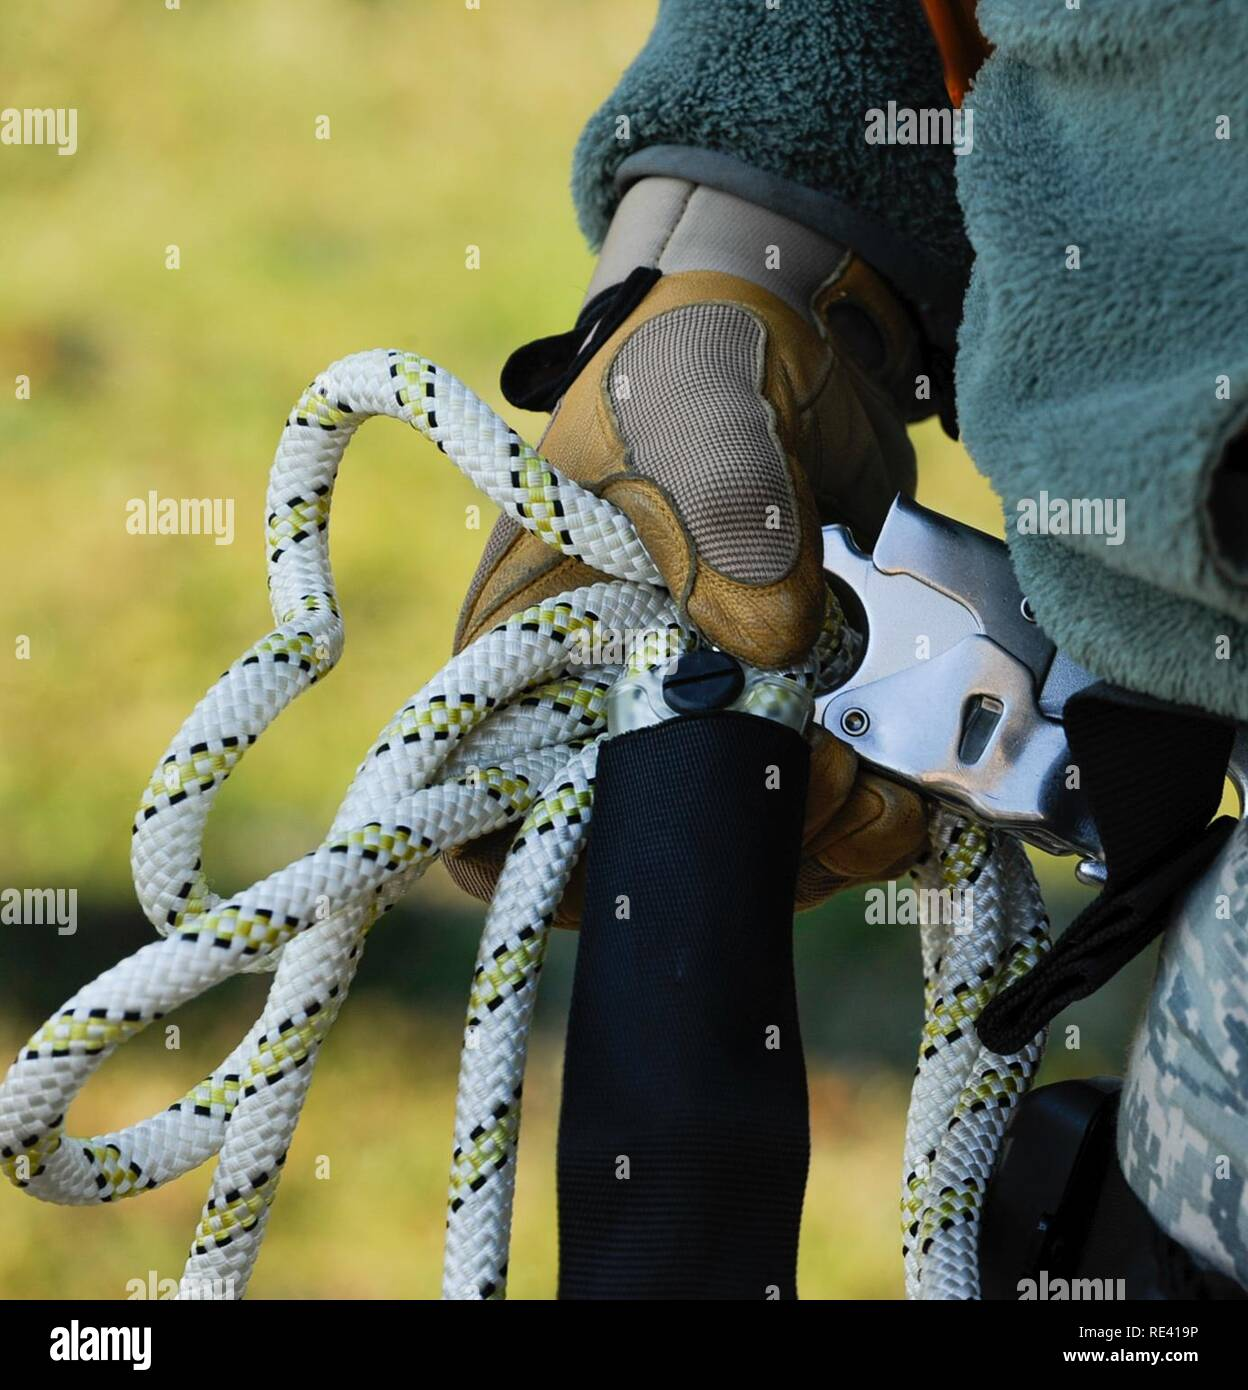 Senior Airman Mathew Godec, 86th Operations Support Squadron airfield systems technician, bundles excess rope at Ramstein Air Base, Germany, Nov. 14, 2016. This equipment is used to assist 86th OSS Airmen in climbing air traffic control radio antennas across the base to keep the airfield open and the Instrument Landing Systems in compliance with the Federal Aviation Administration and International Civil Aviation Organization standards. - Stock Image